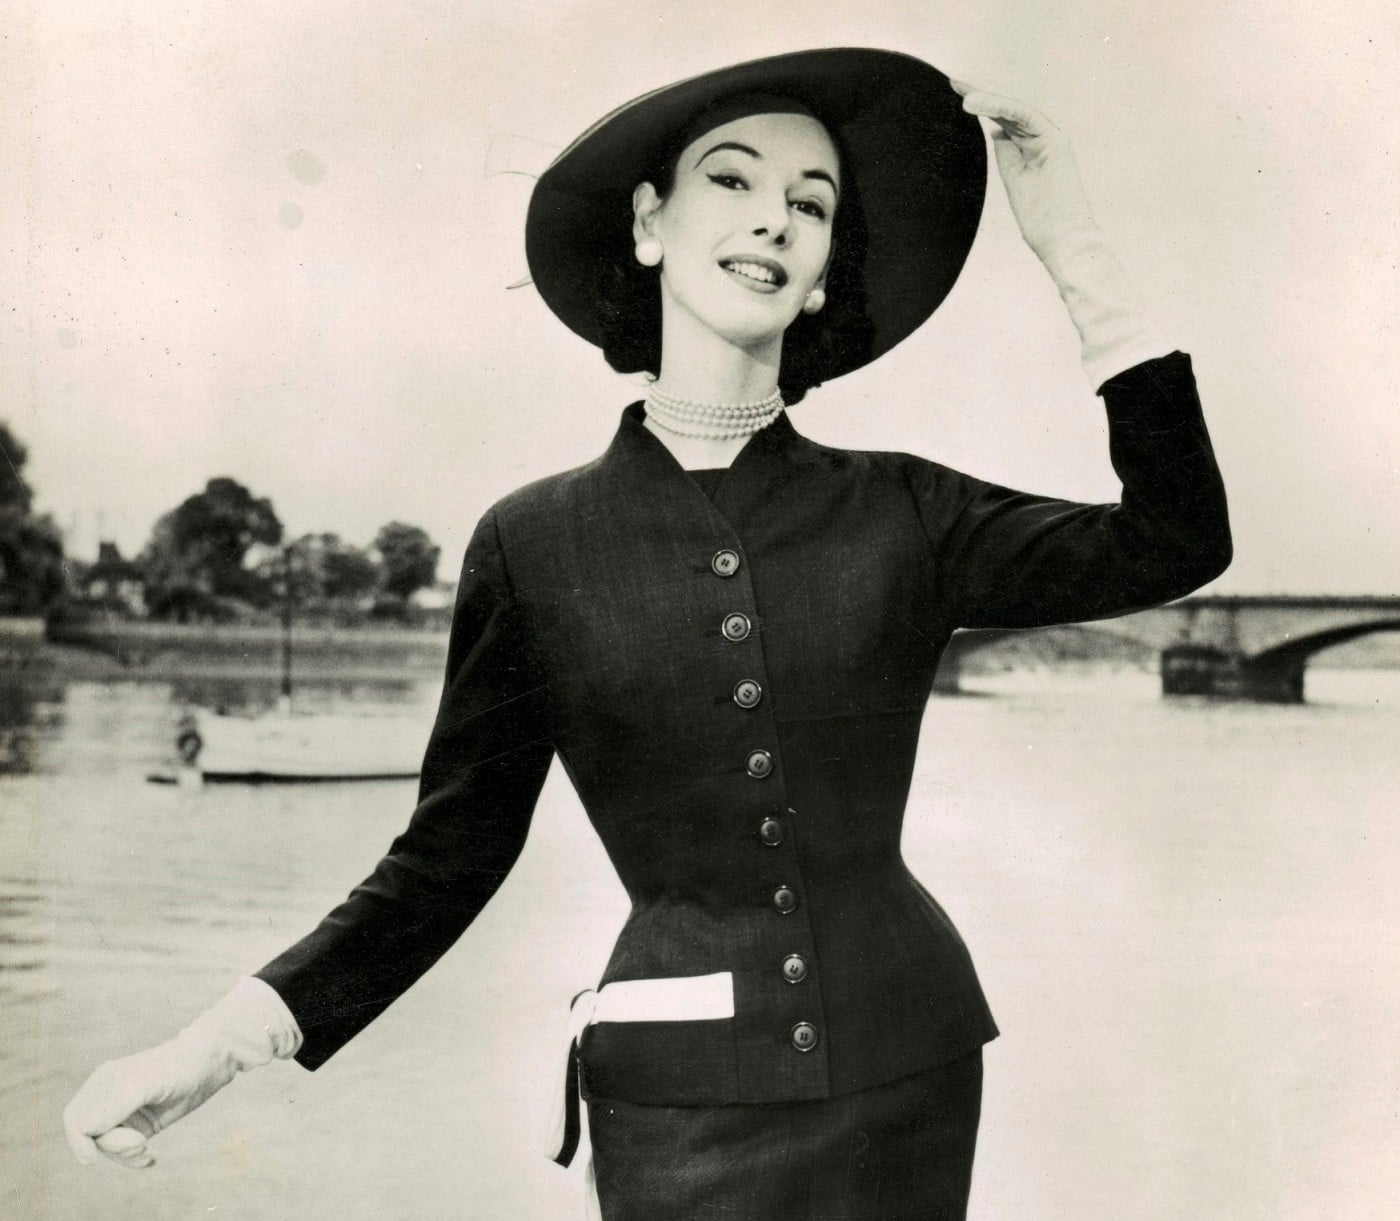 June modelling a tailored wool suit holding the brim of her picture hat about 1951-52 location and photographer unknown (2)